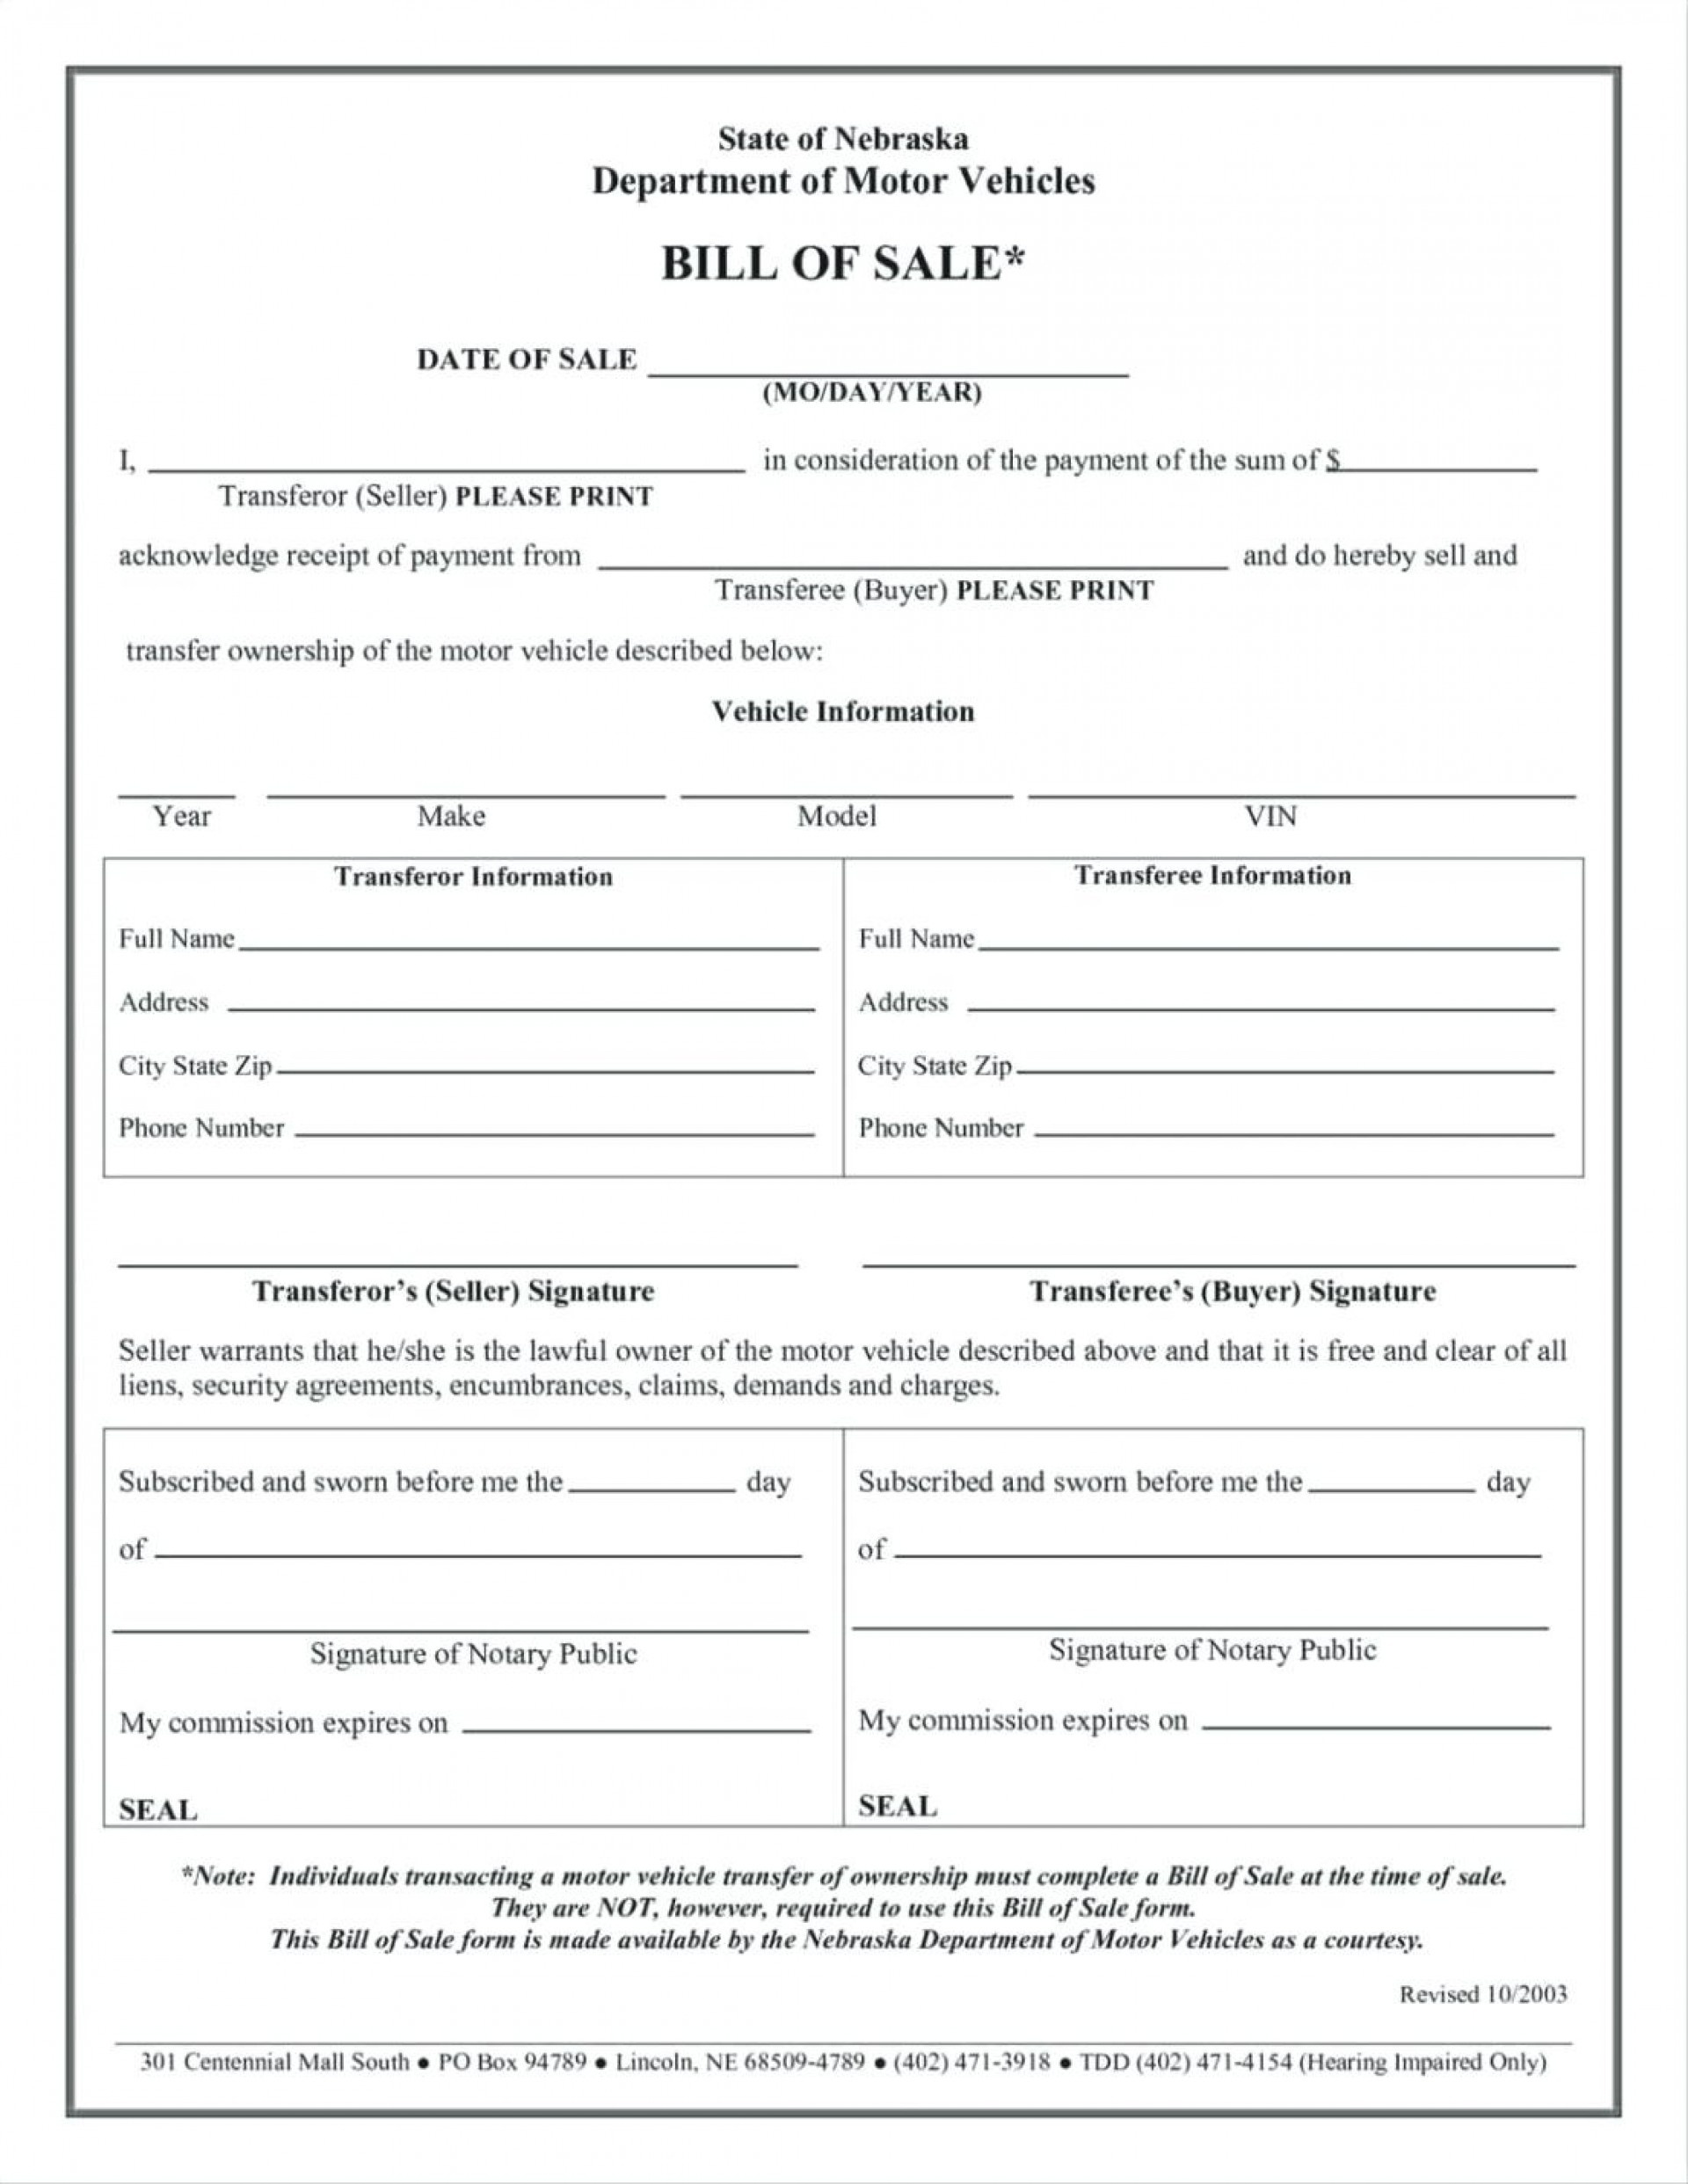 024 Free Printable Bill Of Sale Form Vehicle Template And For Mobile - Free Printable Bill Of Sale For Mobile Home